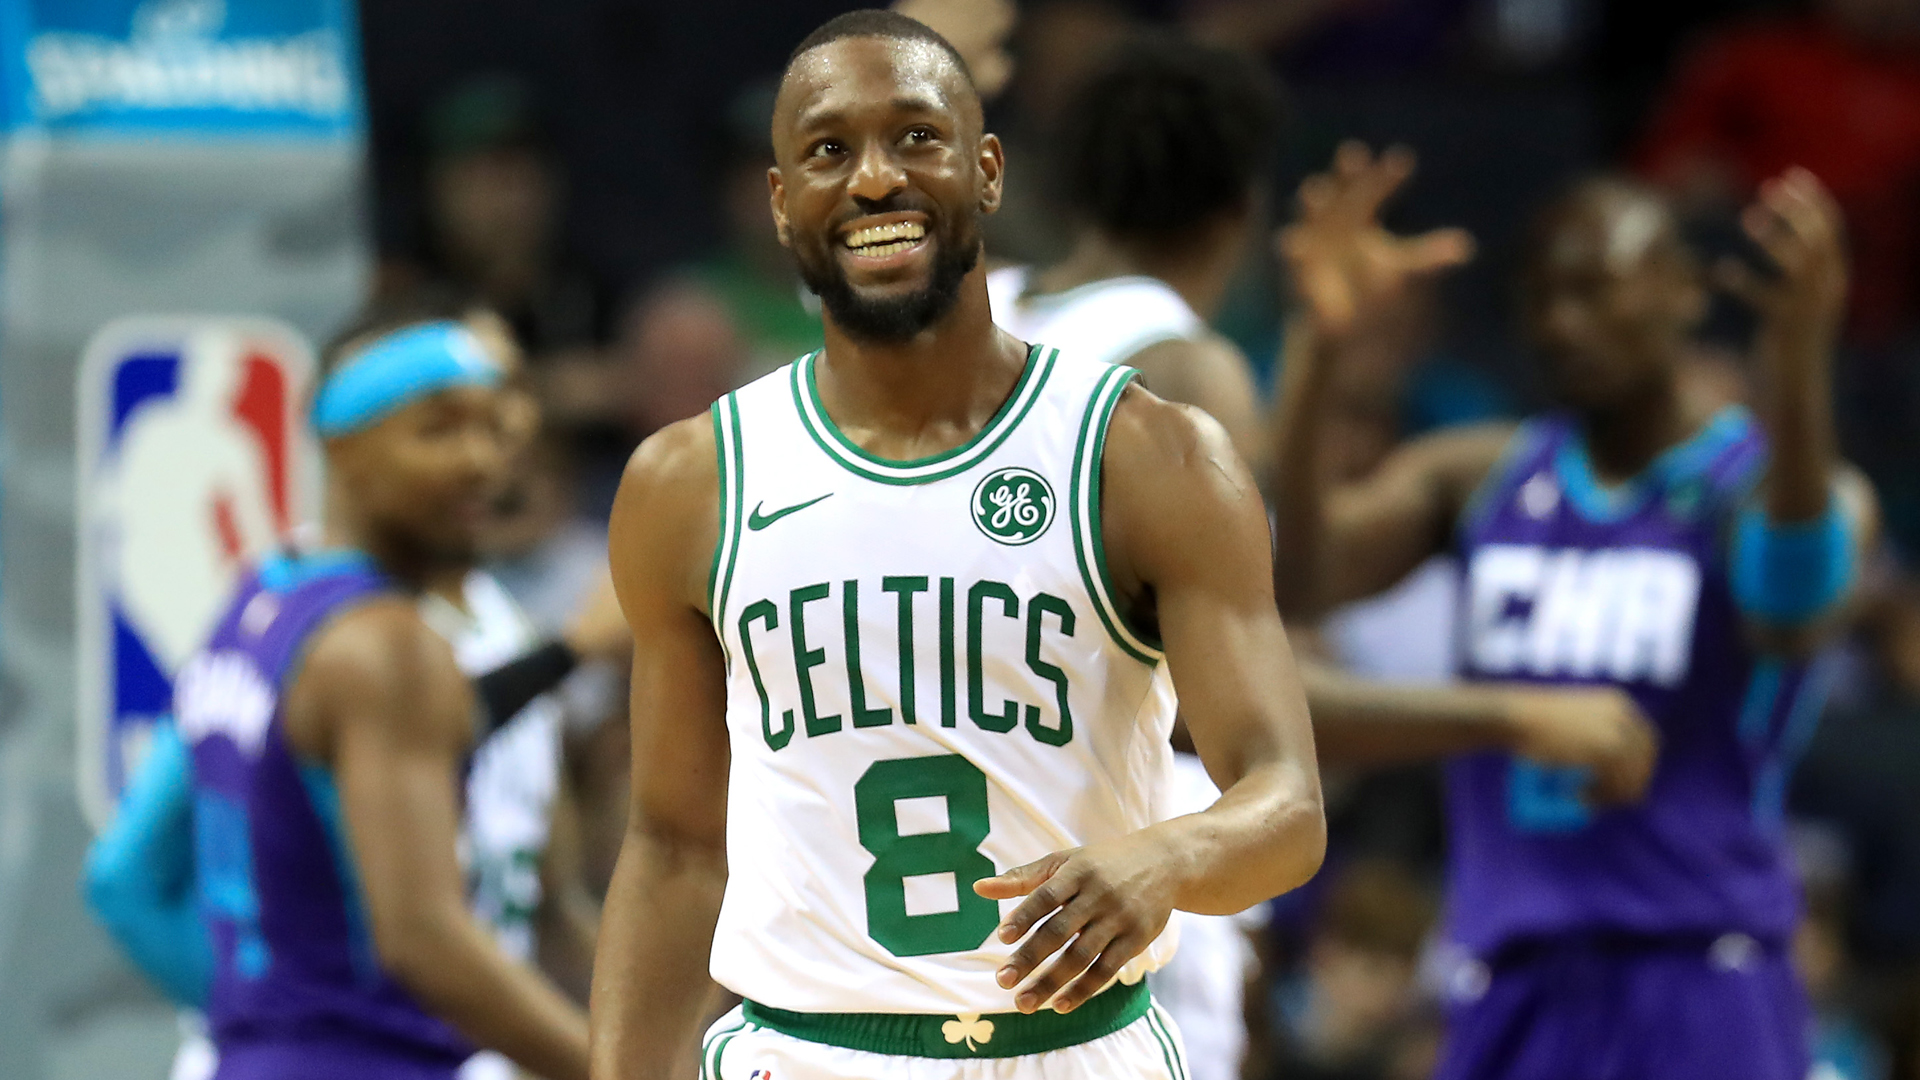 Celtics extend winning streak as Walker returns to Charlotte